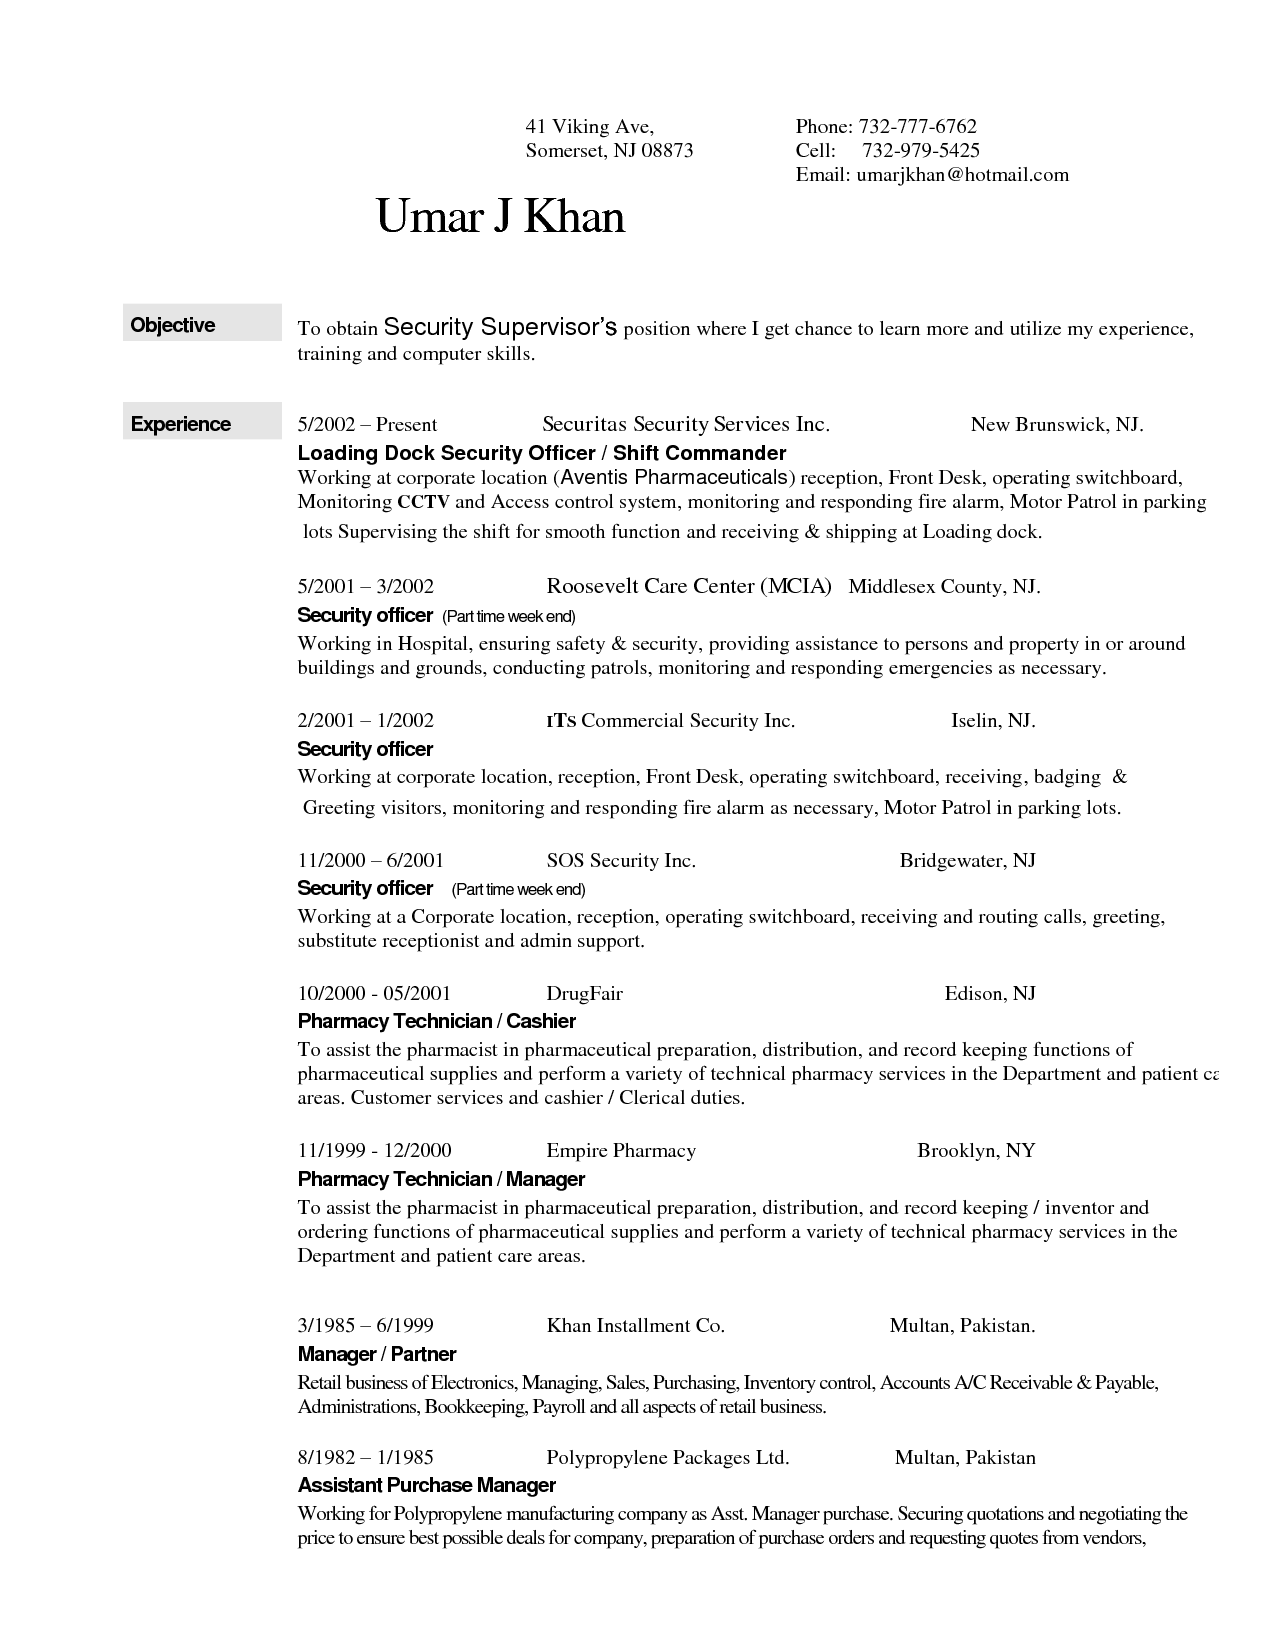 Example Resume Summary Entry Level Security Guard Resume Examples  Httpwwwjobresume